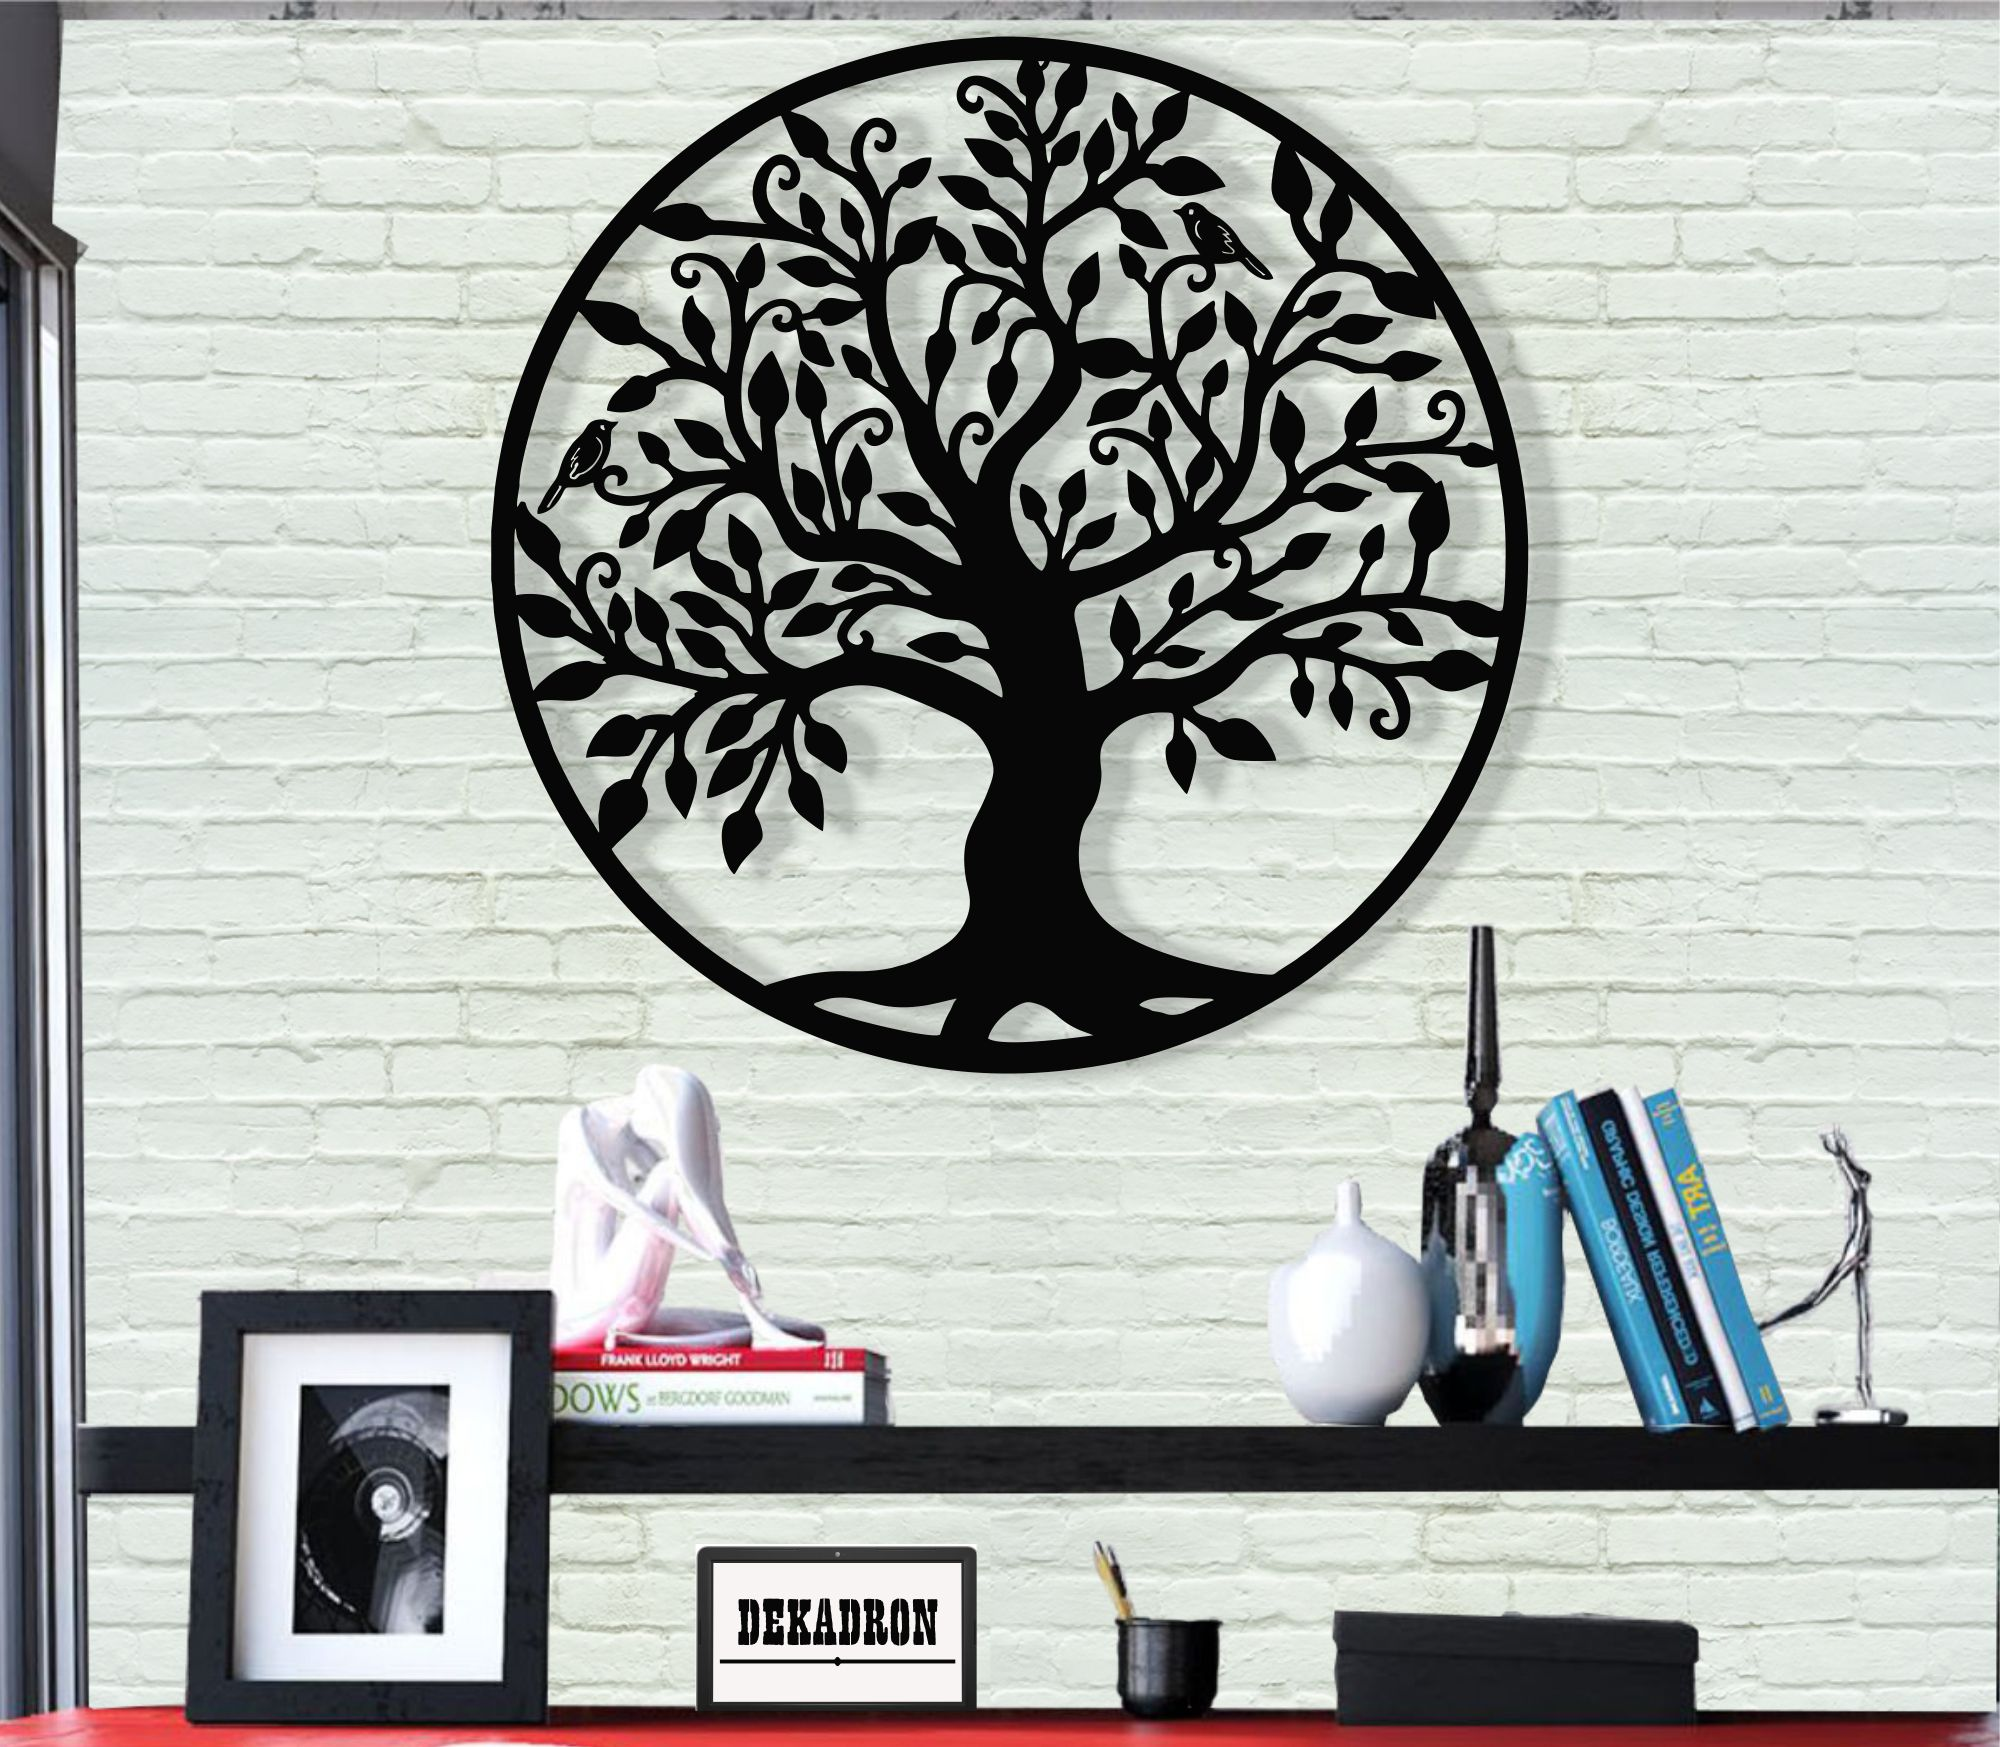 Metal Wall Art, Tree of Life Wall Art, Metal Family Tree Sign, Metal Wall Decor, Interior Decoration image